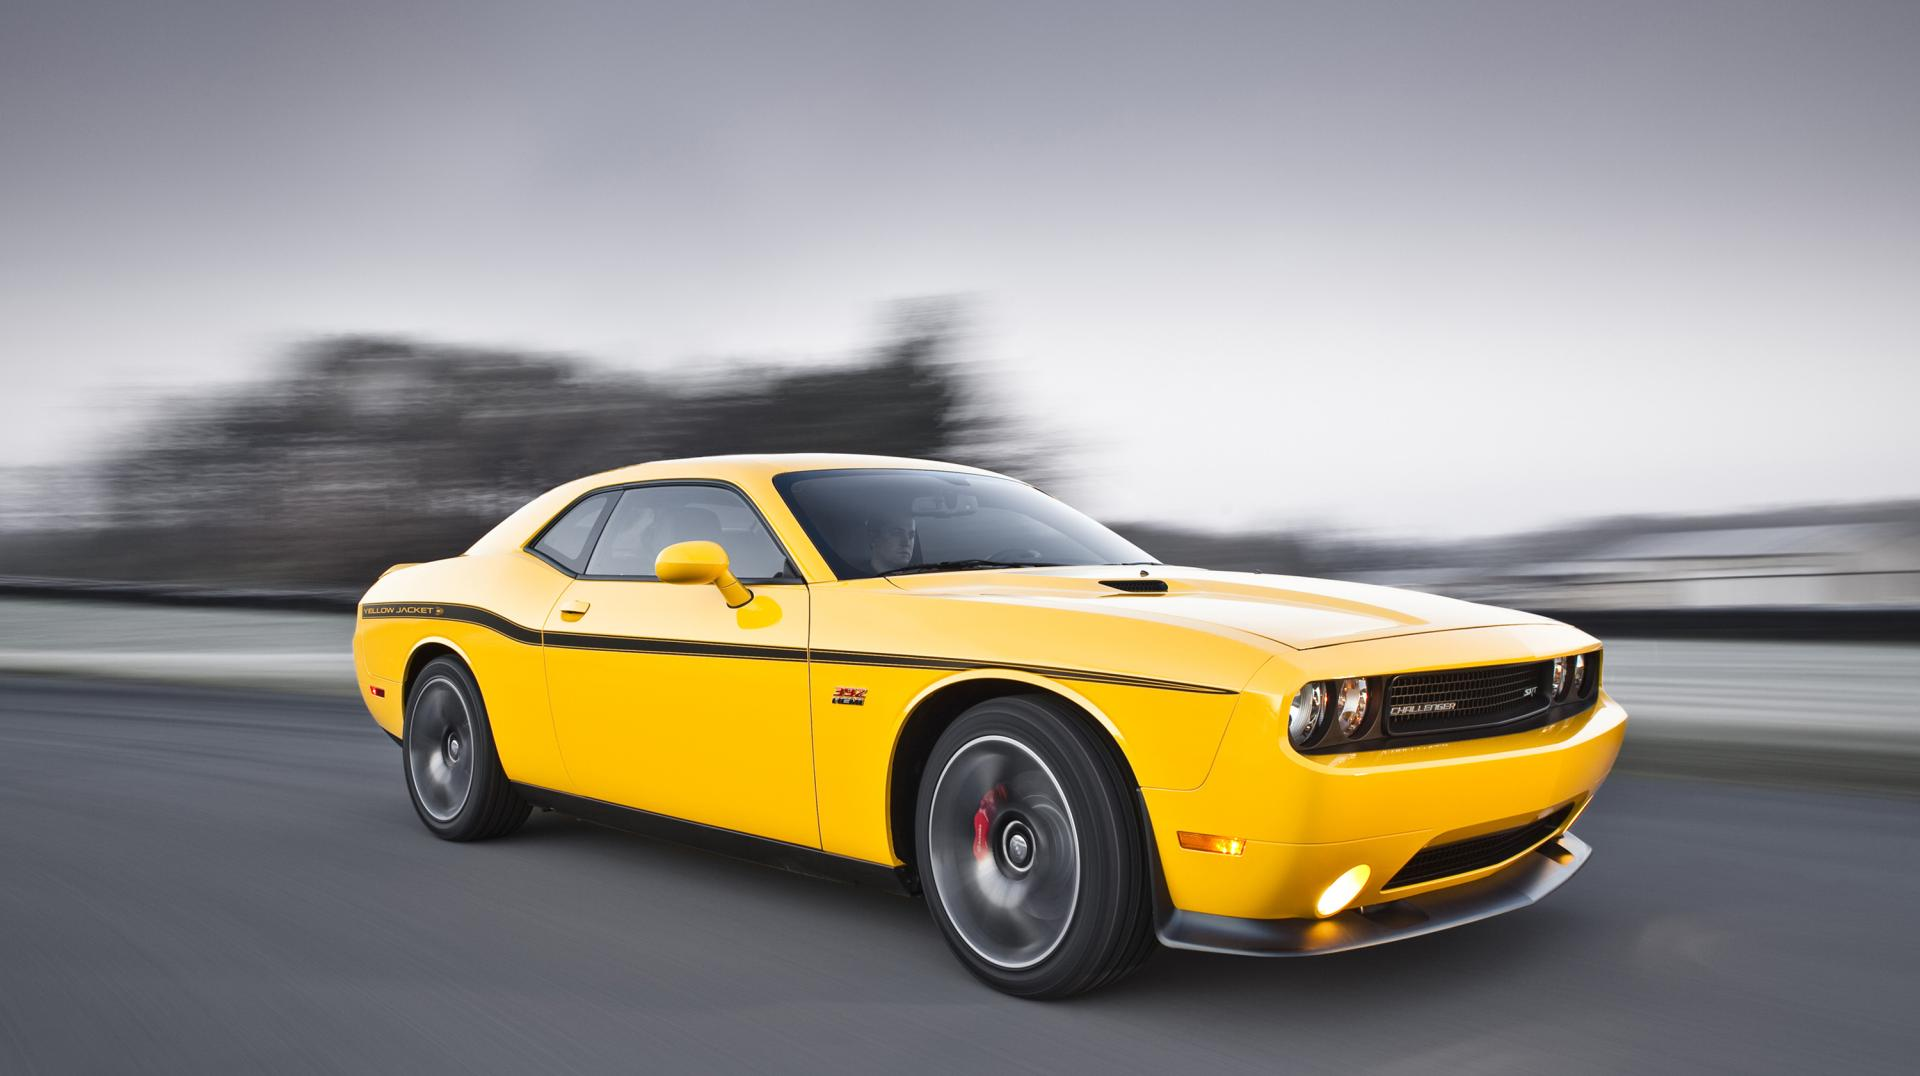 2012 dodge challenger srt8 392 yellow jacket. Cars Review. Best American Auto & Cars Review